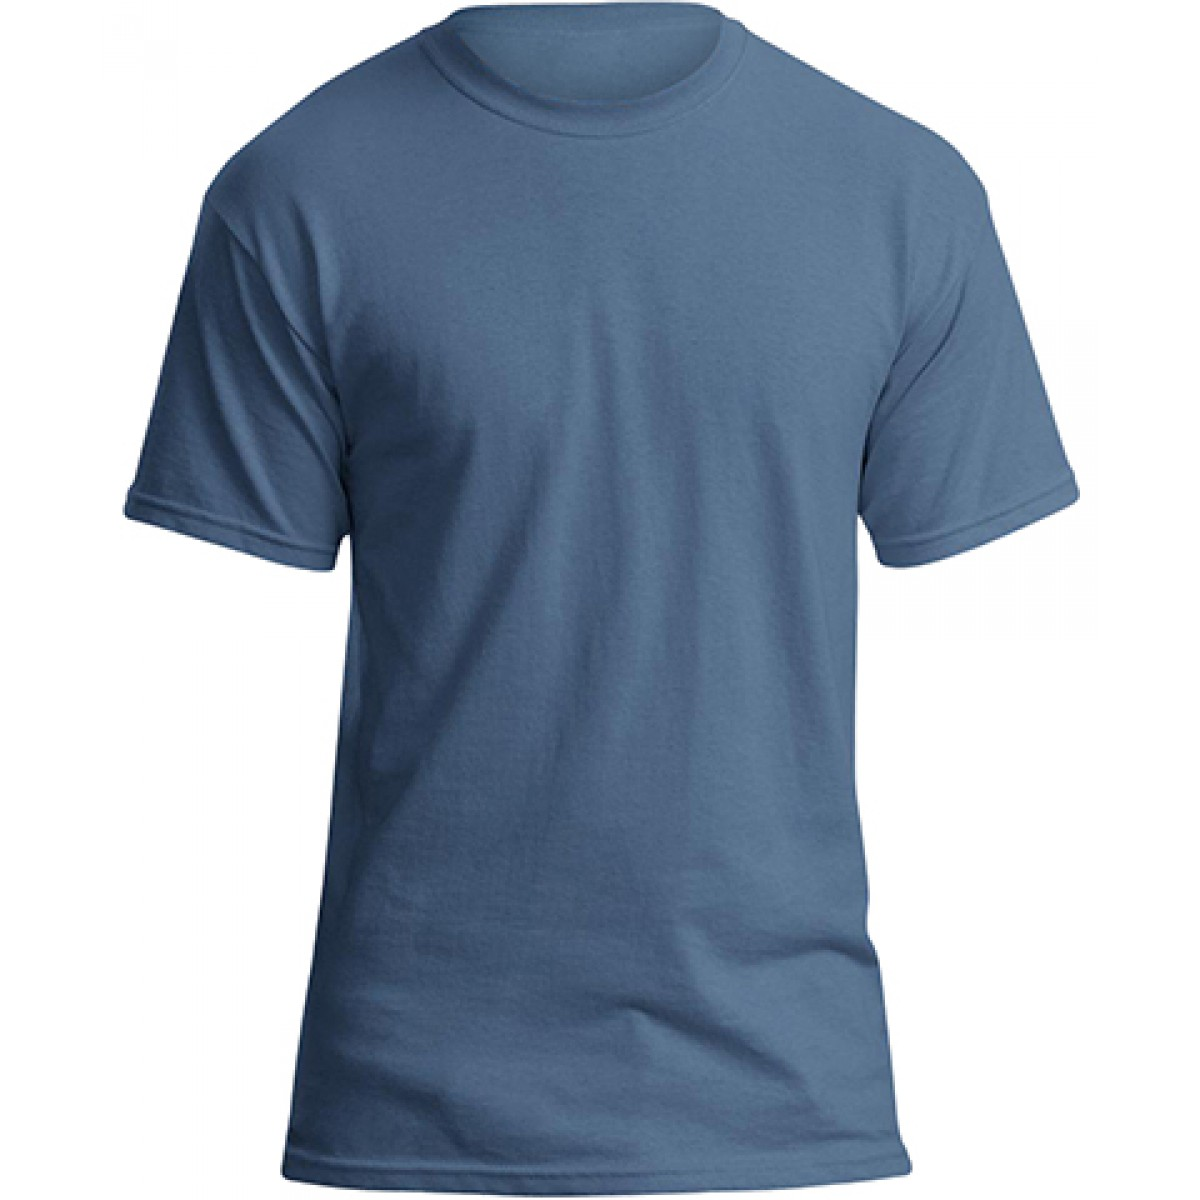 Soft 100% Cotton T-Shirt-Indigo Blue-2XL